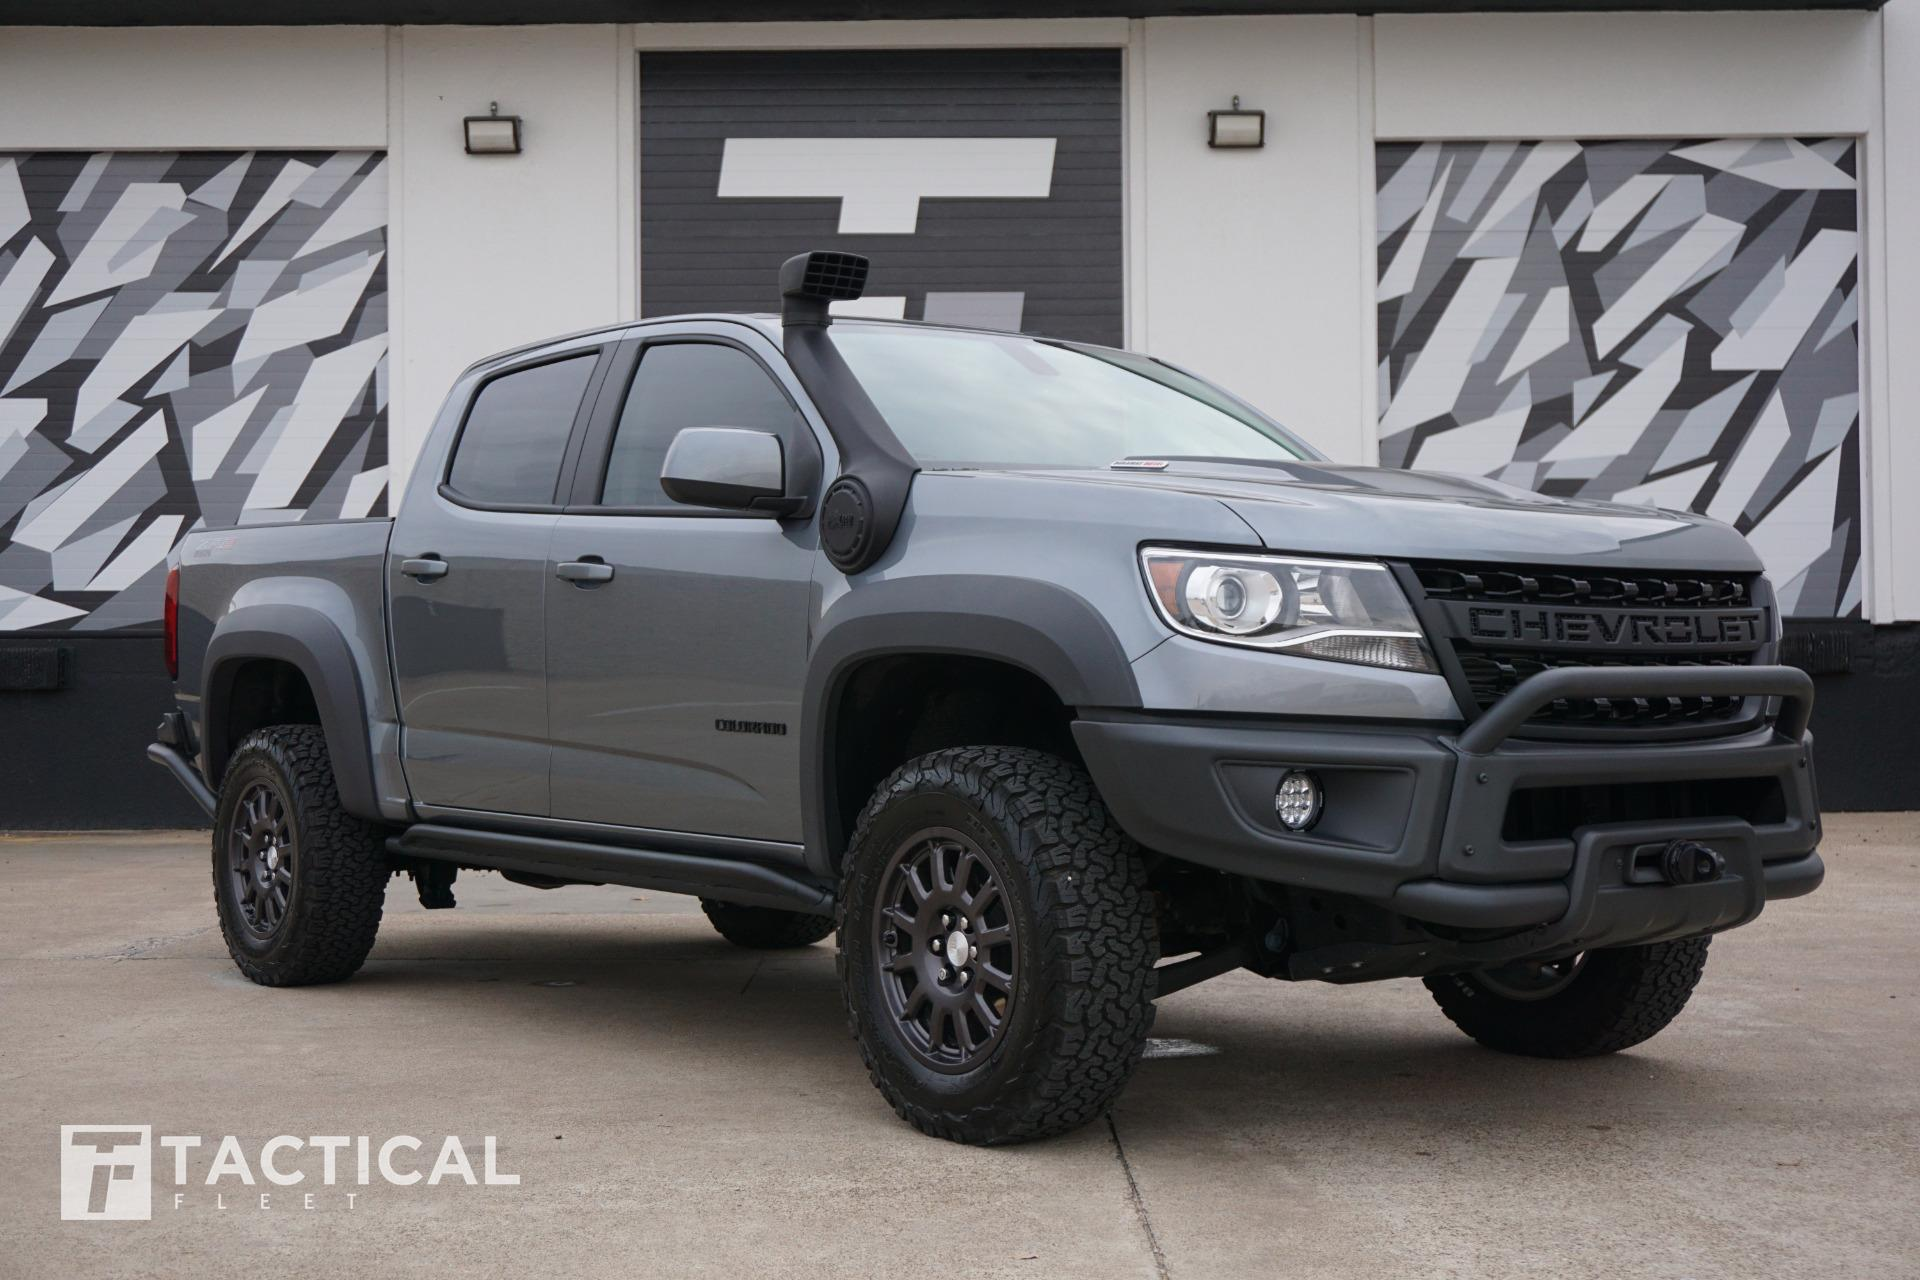 used 2020 chevrolet colorado zr2 for sale 54 900 tactical fleet stock tf1521 used 2020 chevrolet colorado zr2 for